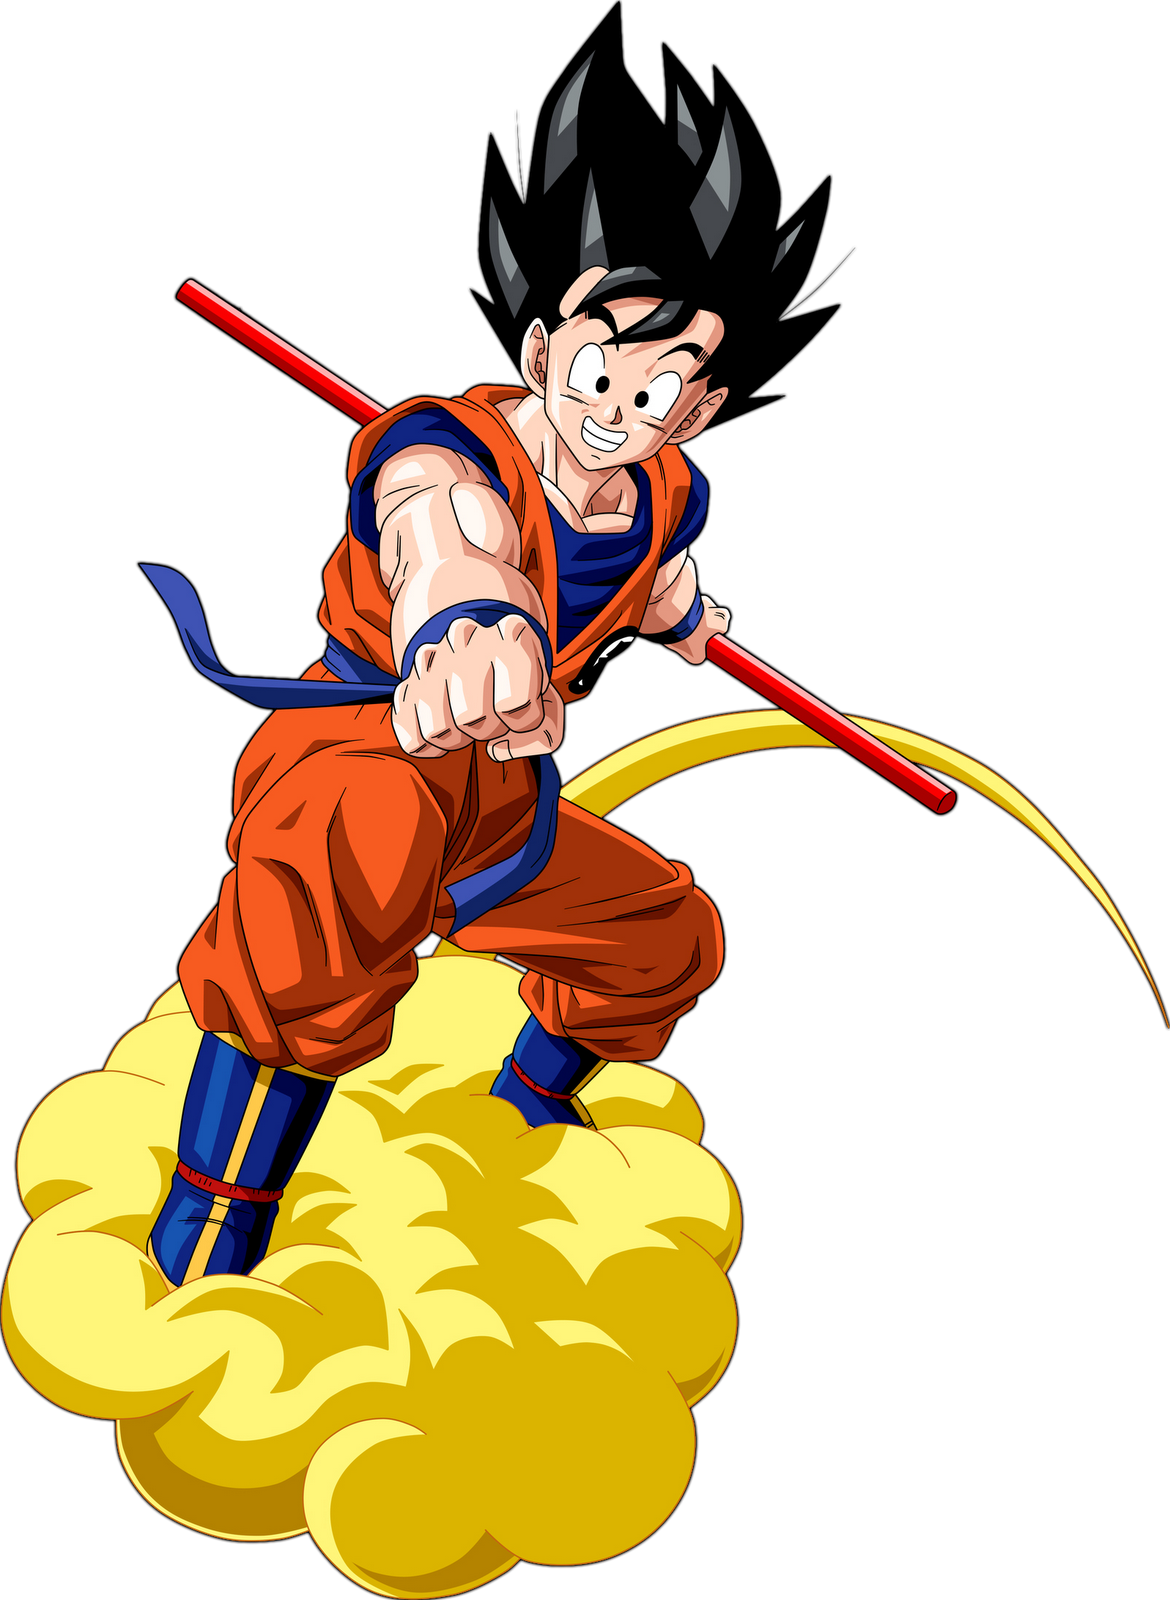 Goku image 32654 Free Icons and PNG Backgrounds